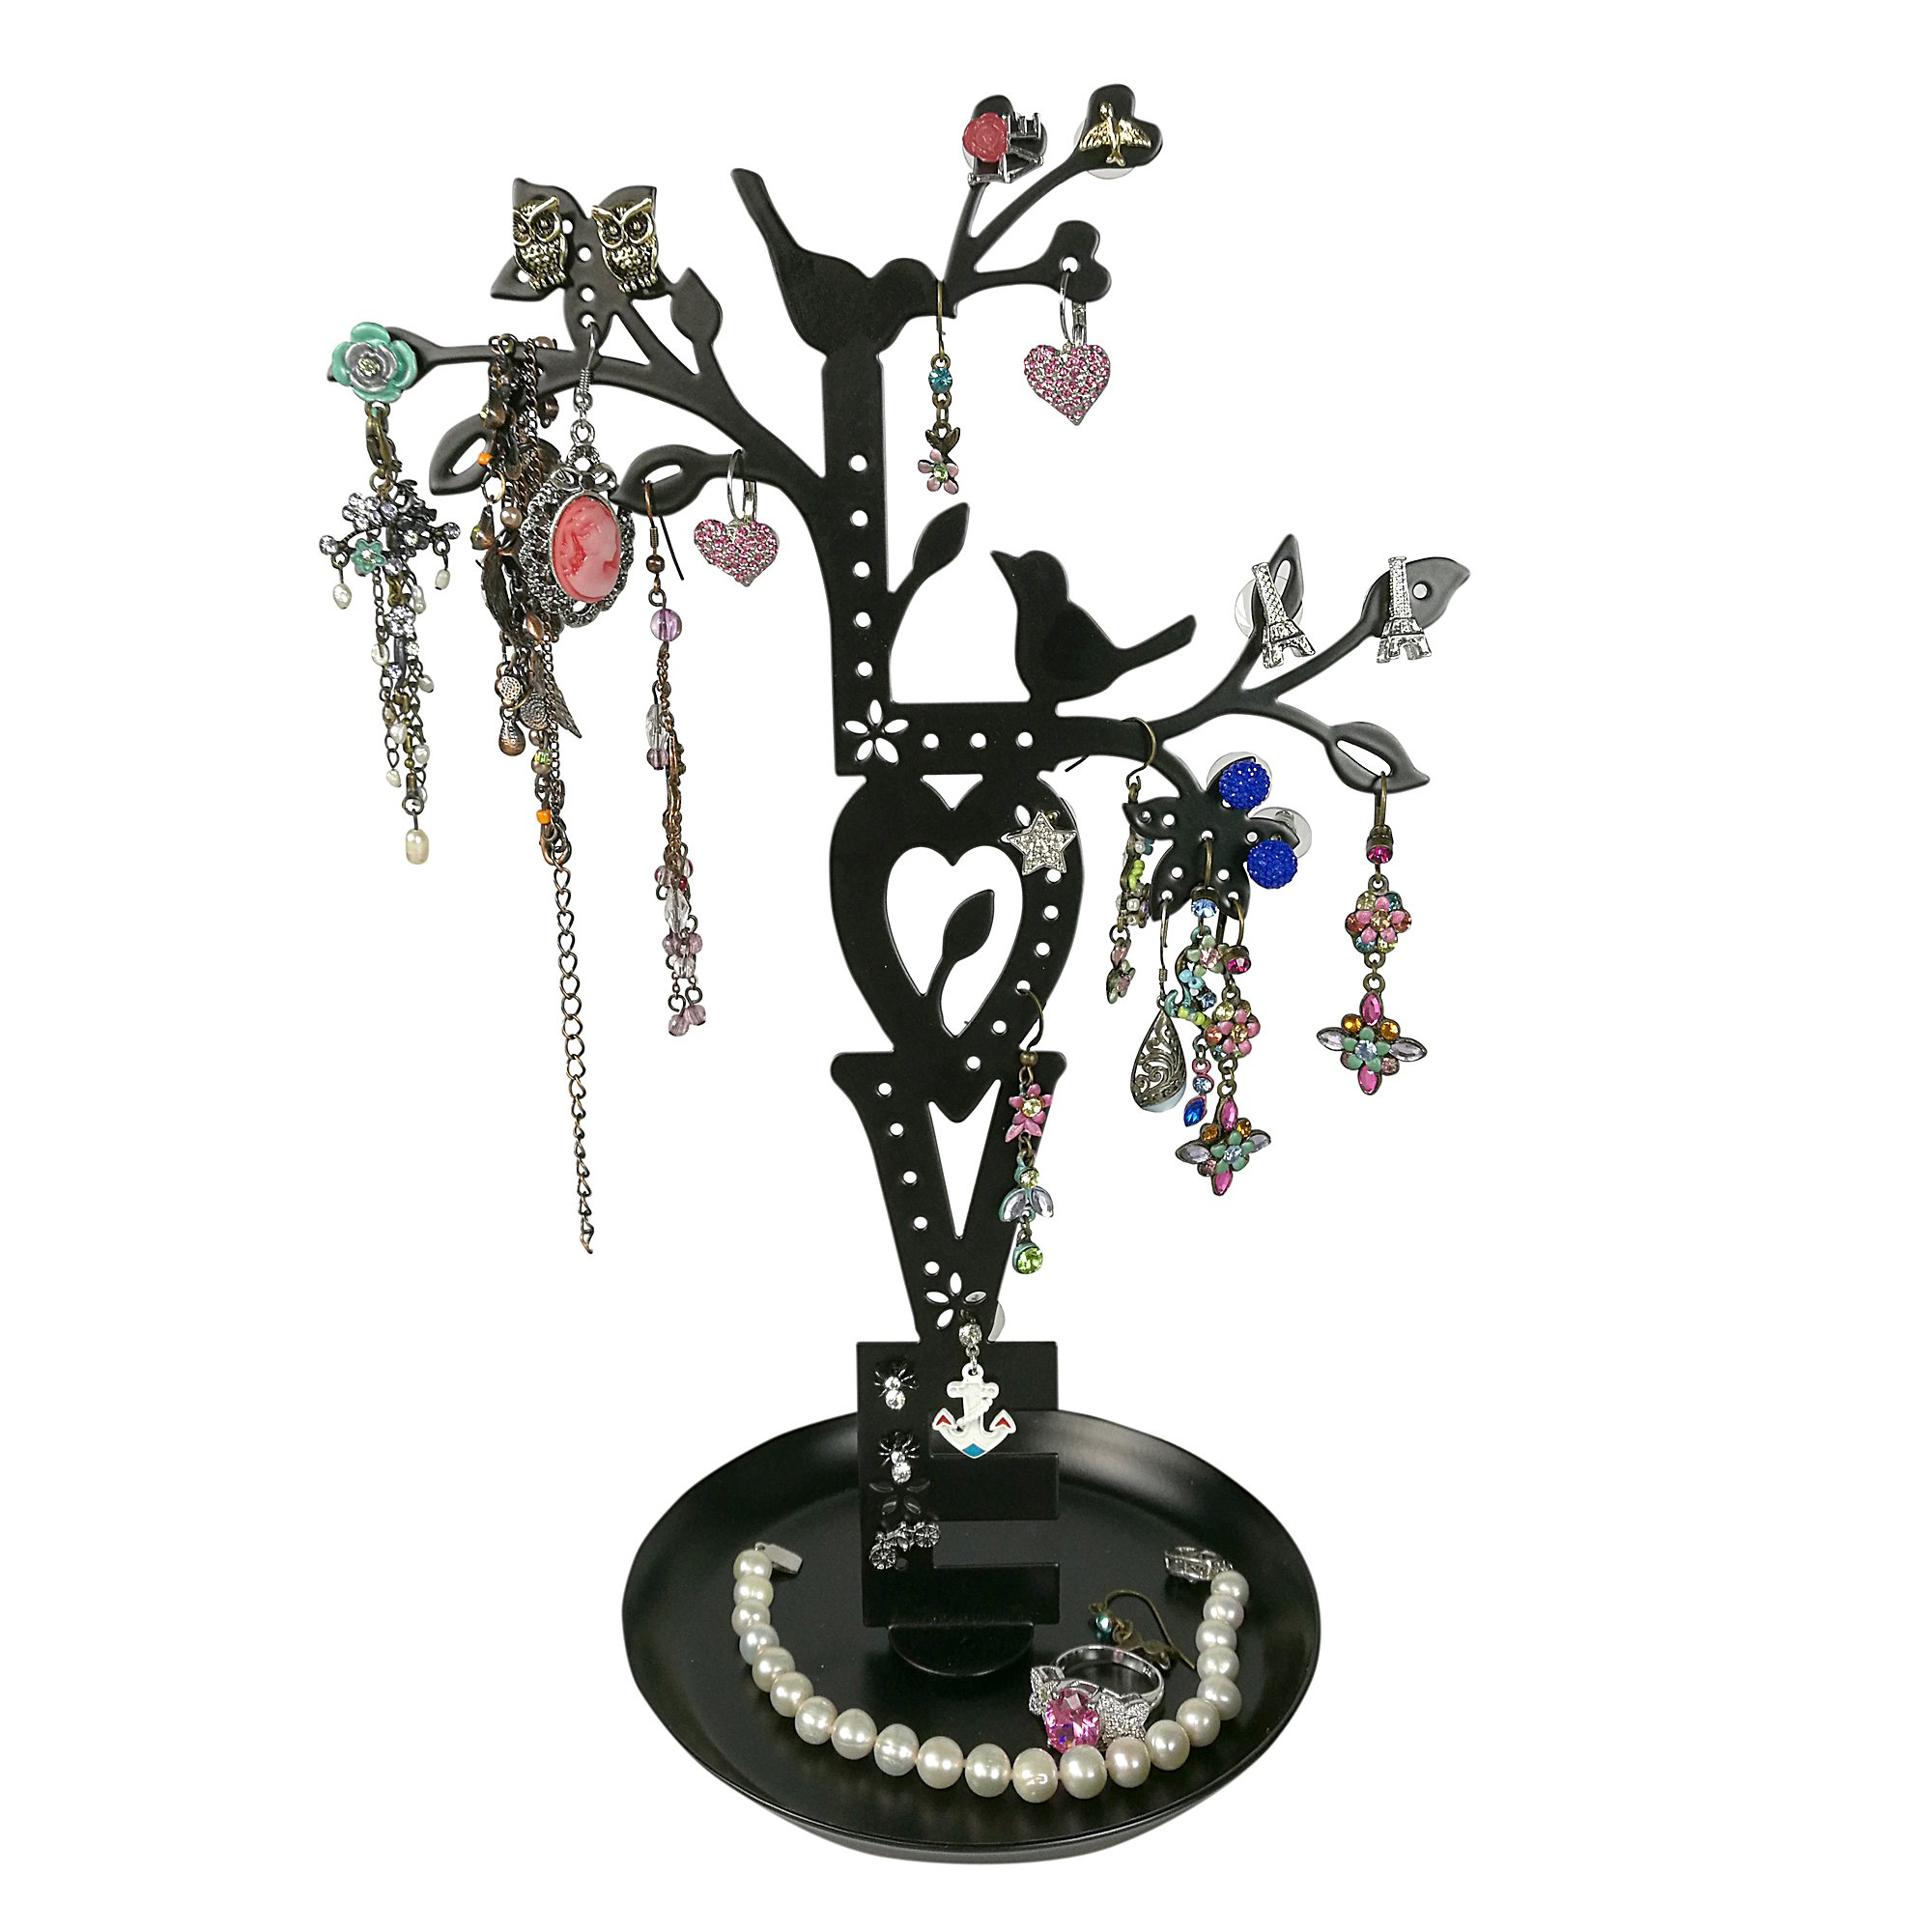 LOVE Jewelry Tree Stand Black with Two Lovebirds Tweeting, Removable Magnet Bottom, Tray Base, Metal by JewelryNanny (Image #2)